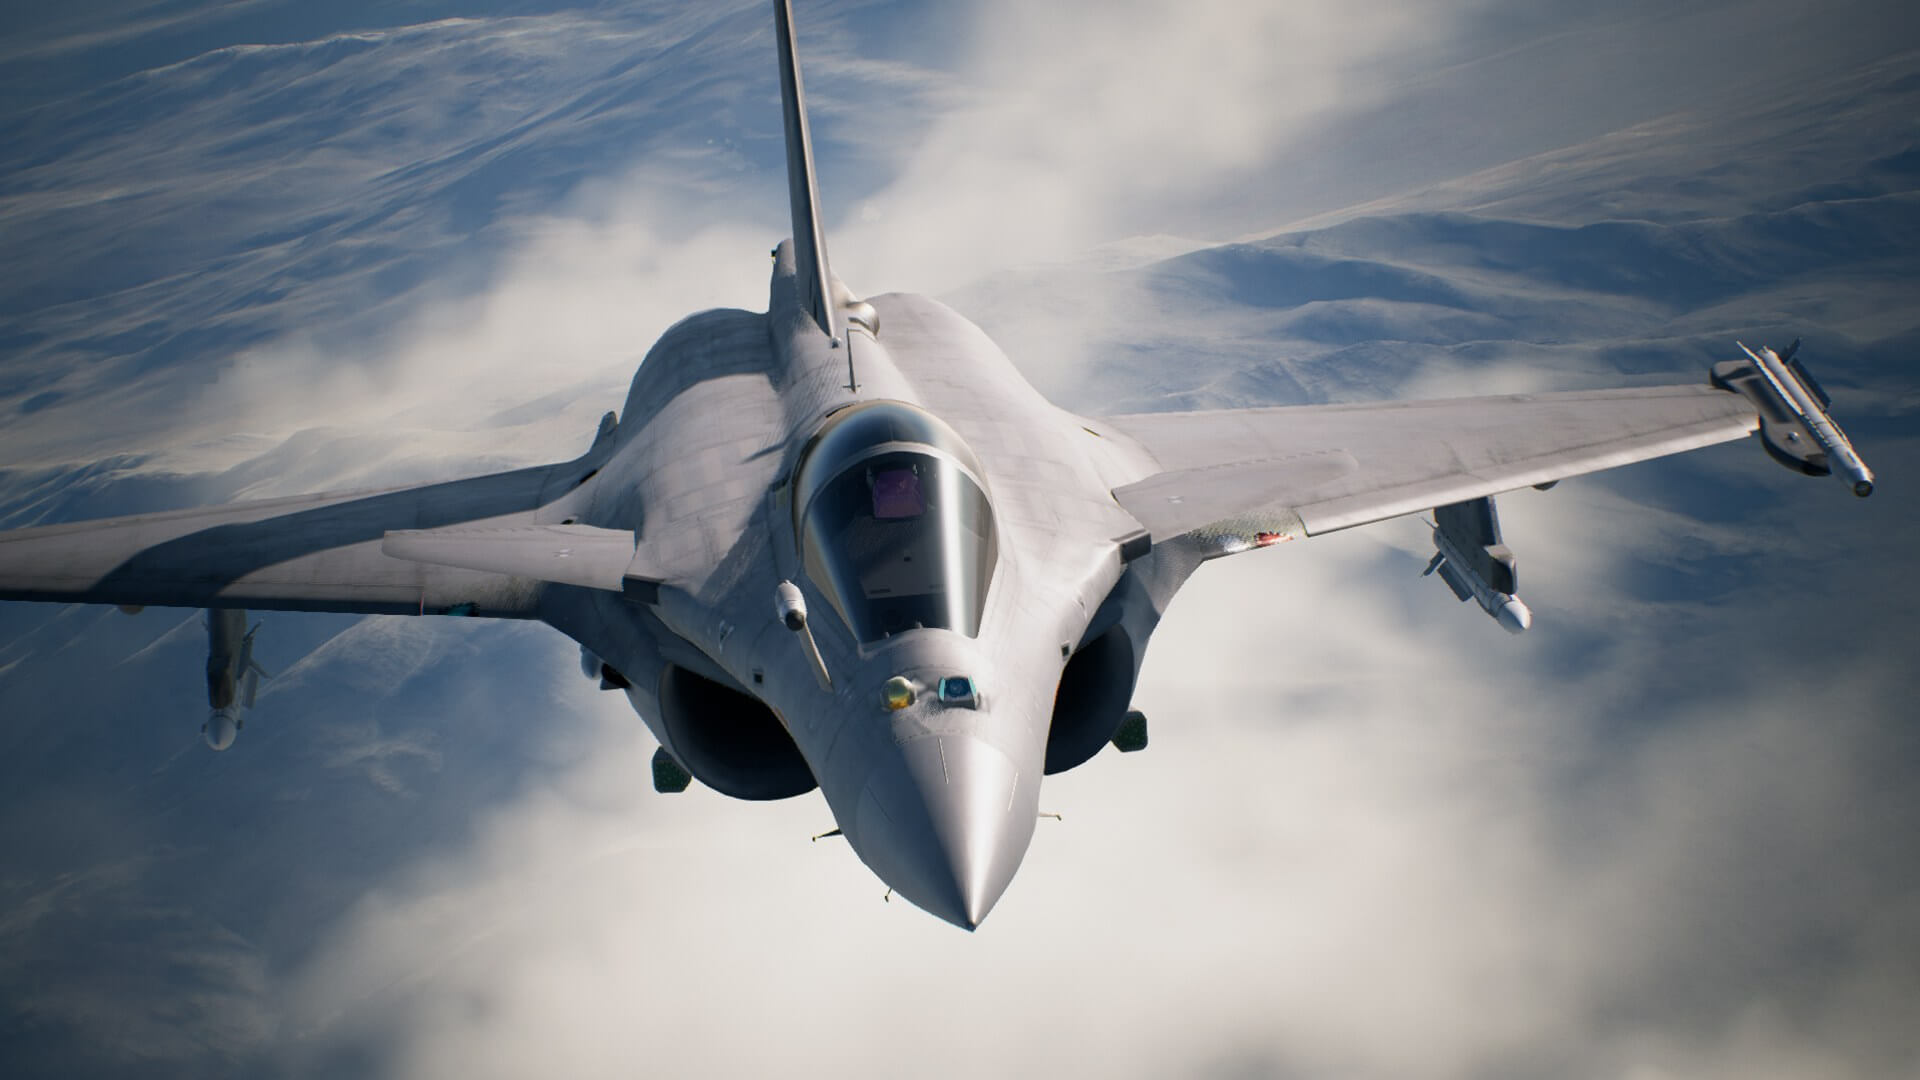 Real-life fighter pilot shares thoughts on Ace Combat 7